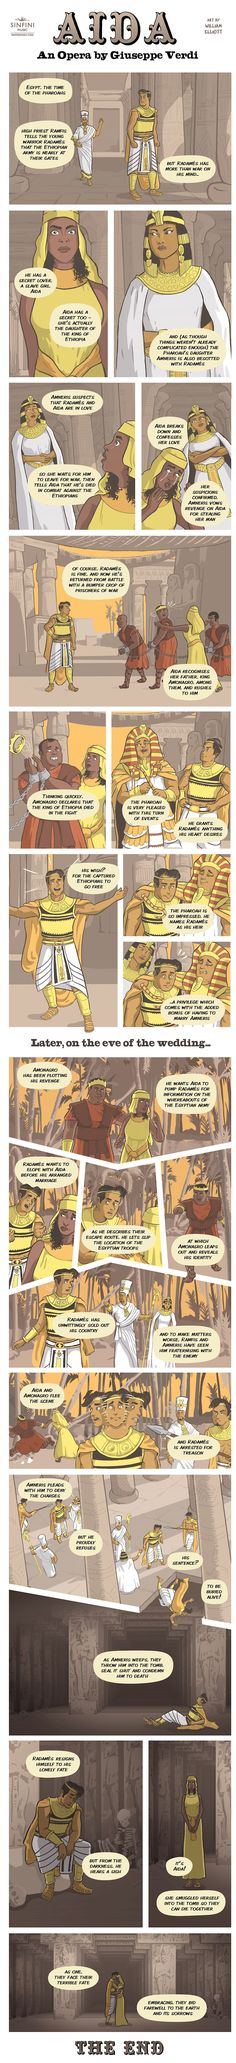 Opera Strip Aida>>I never actually knew how the opera went, only the musical. Last year, the high school put on the musical while a community opera house performed the opera haha